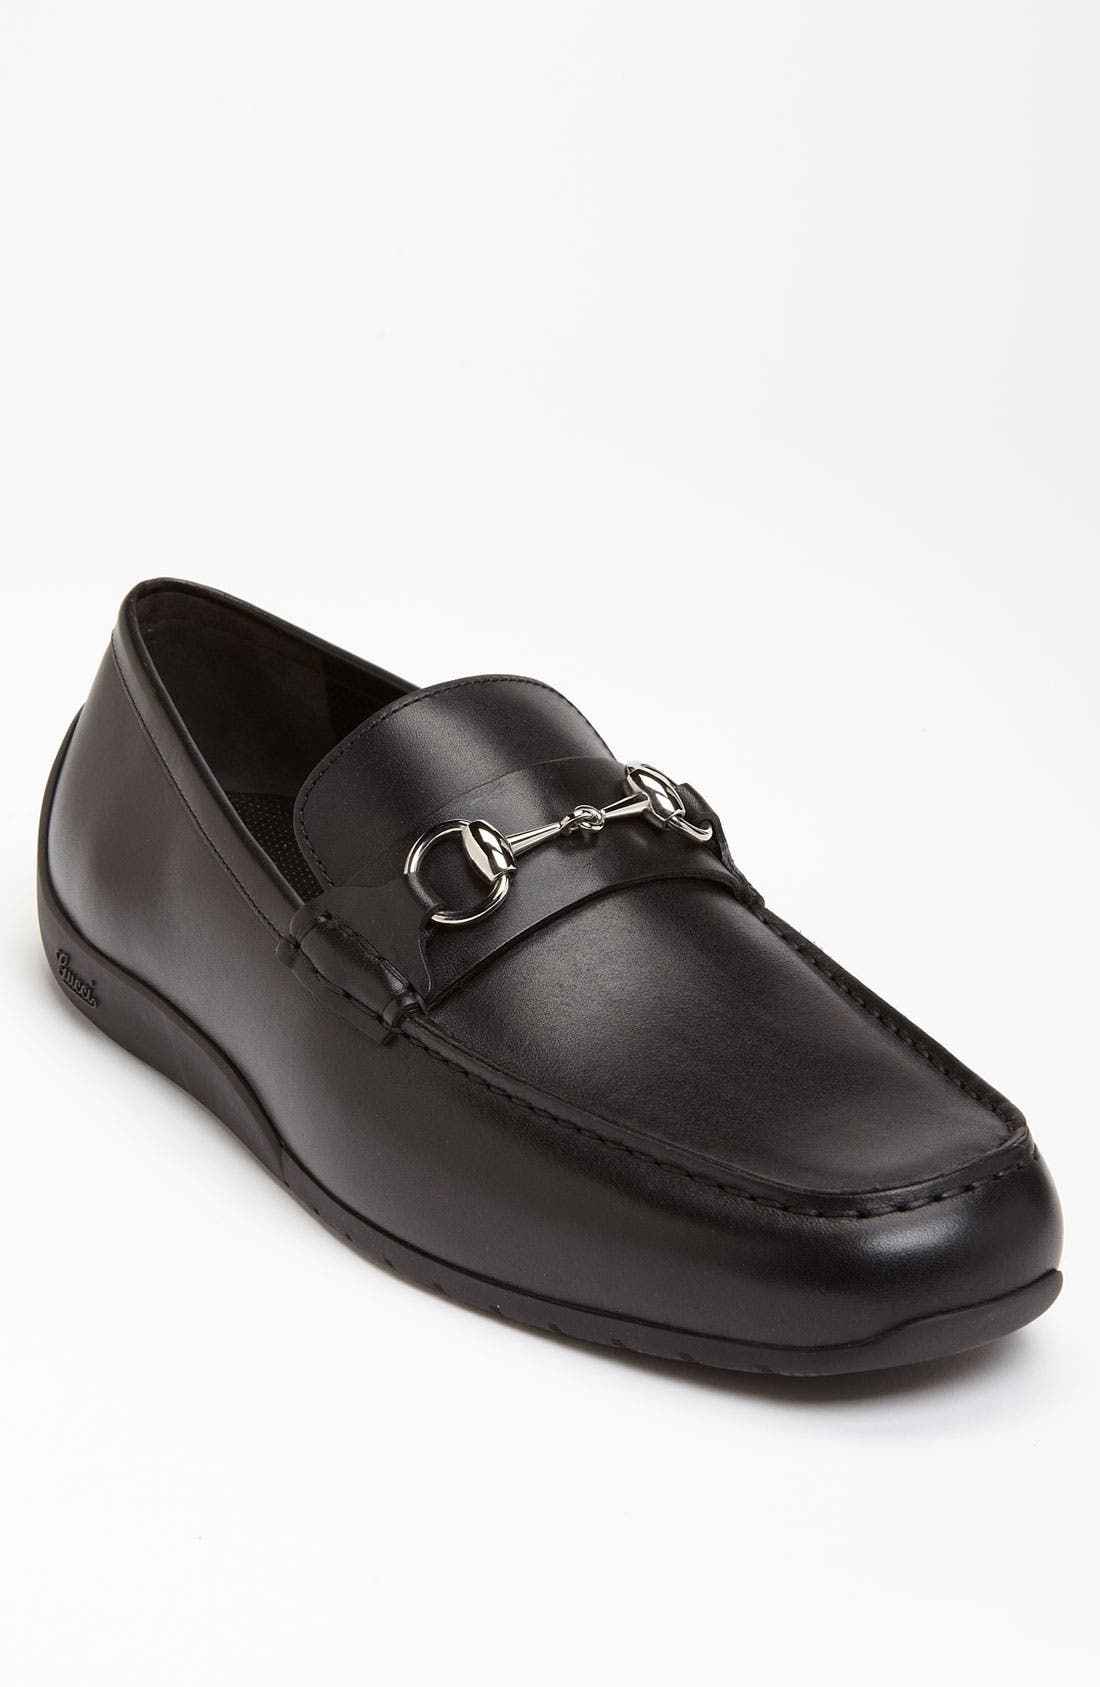 Alternate Image 1 Selected - Gucci 'Silverstone' Moccasin Loafer